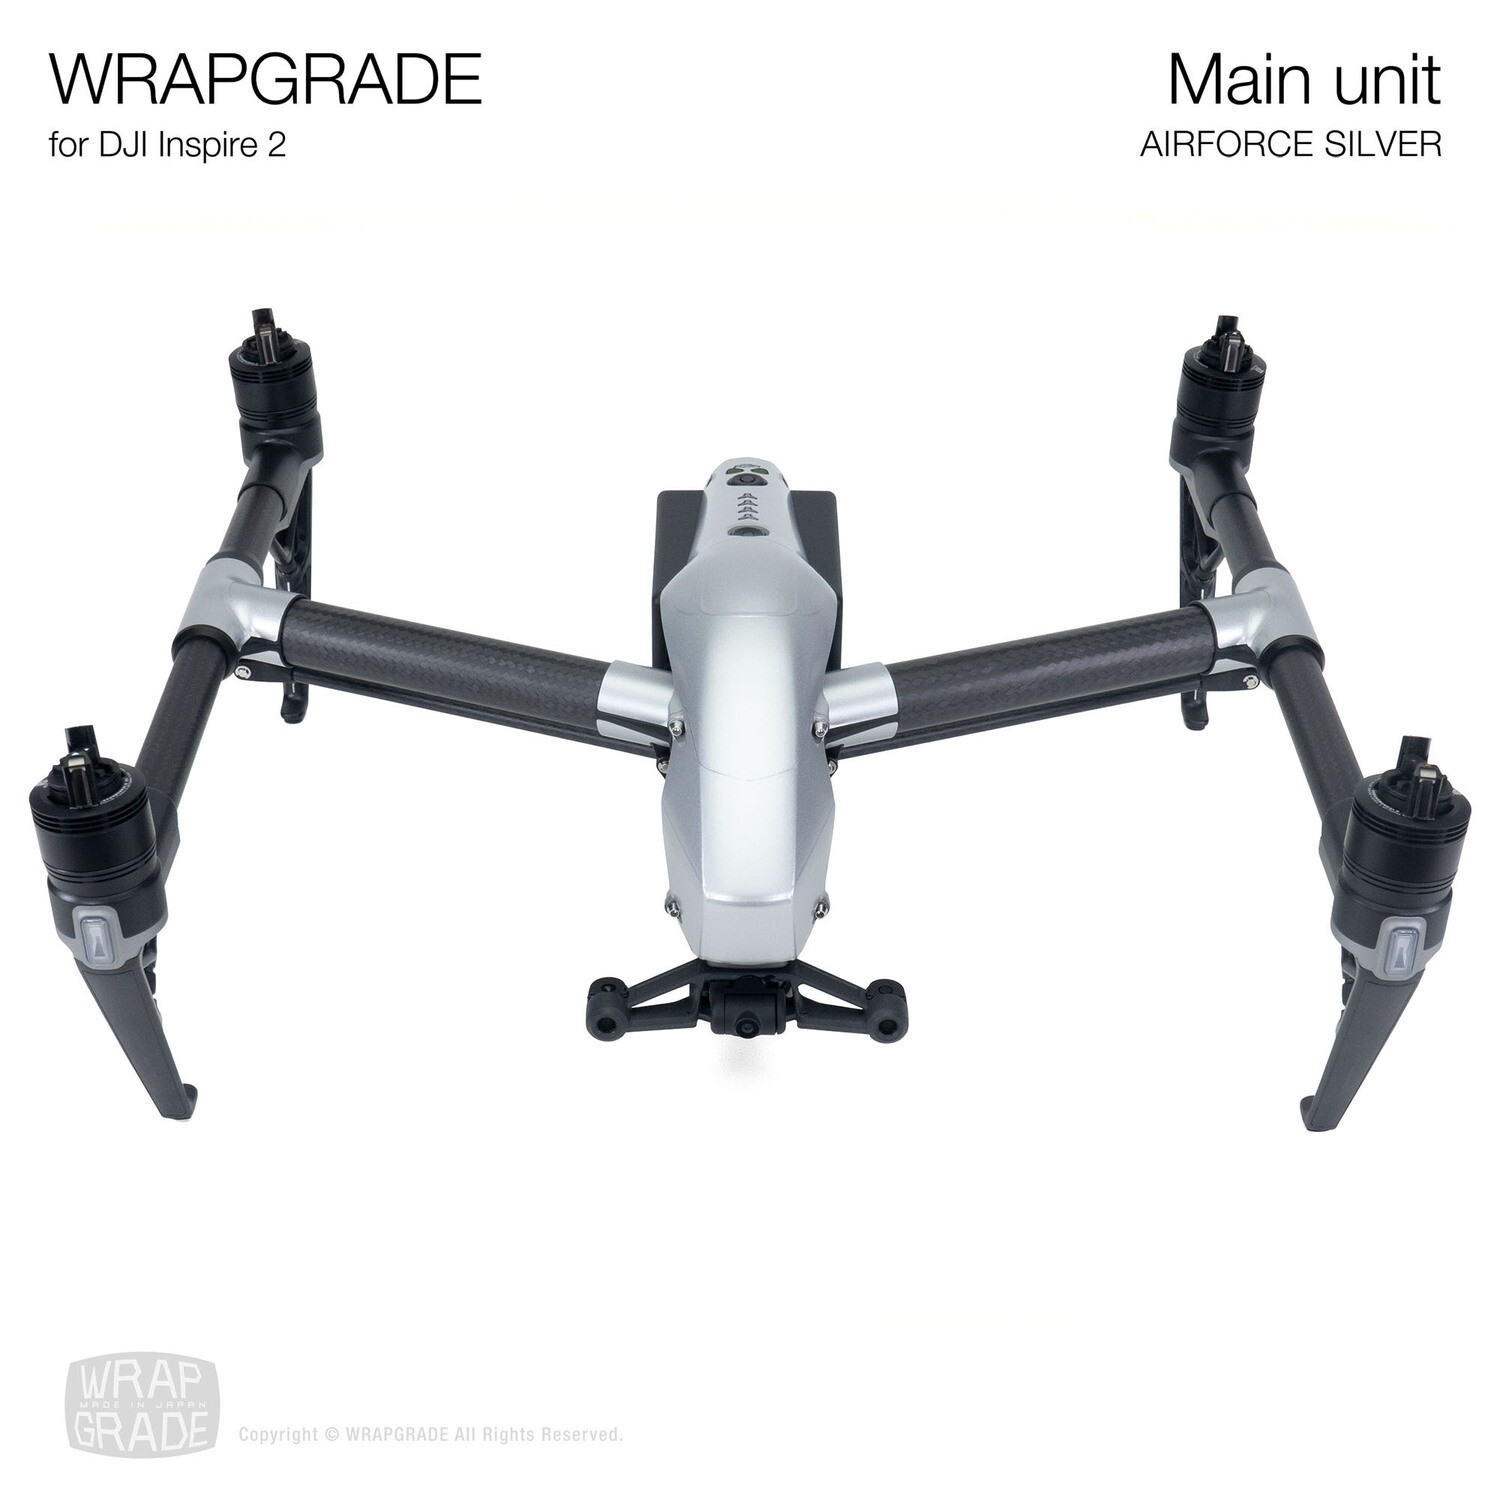 WRAPGRADE for DJI Inspire 2 | Main Unit (AIRFORCE SILVER)